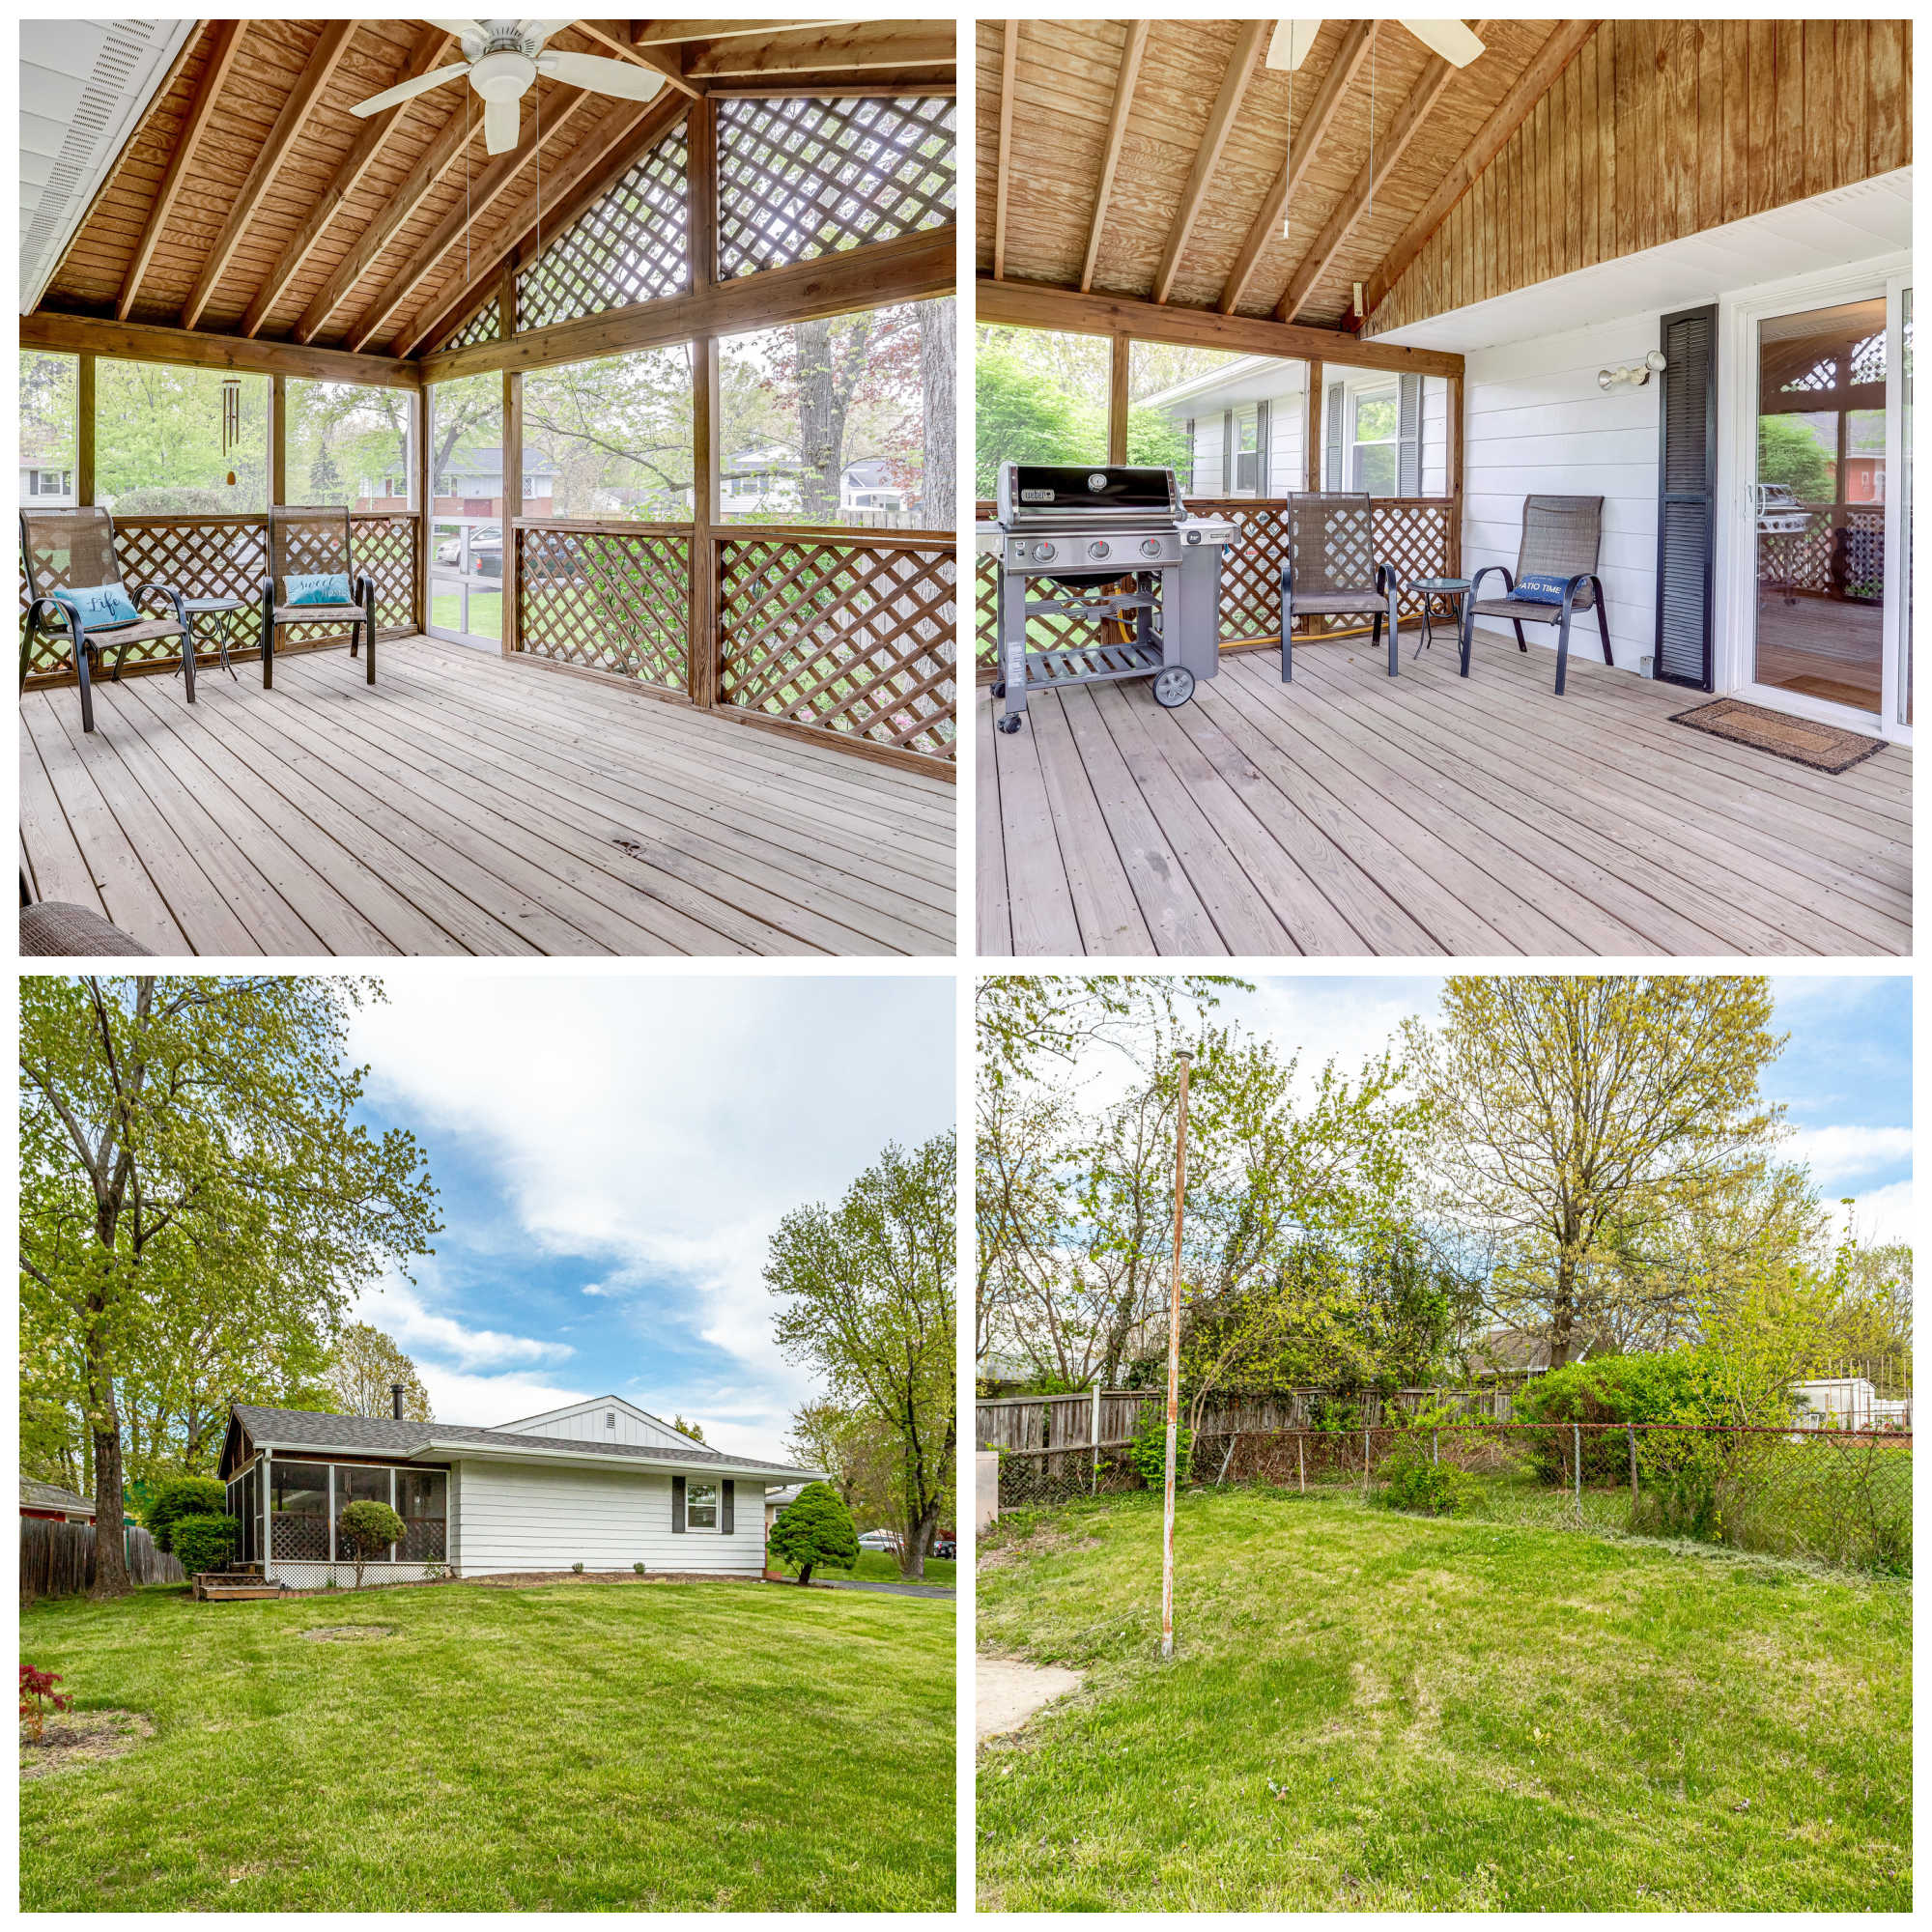 605 E Roanoke Rd, Sterling- Screened Porch and Yard